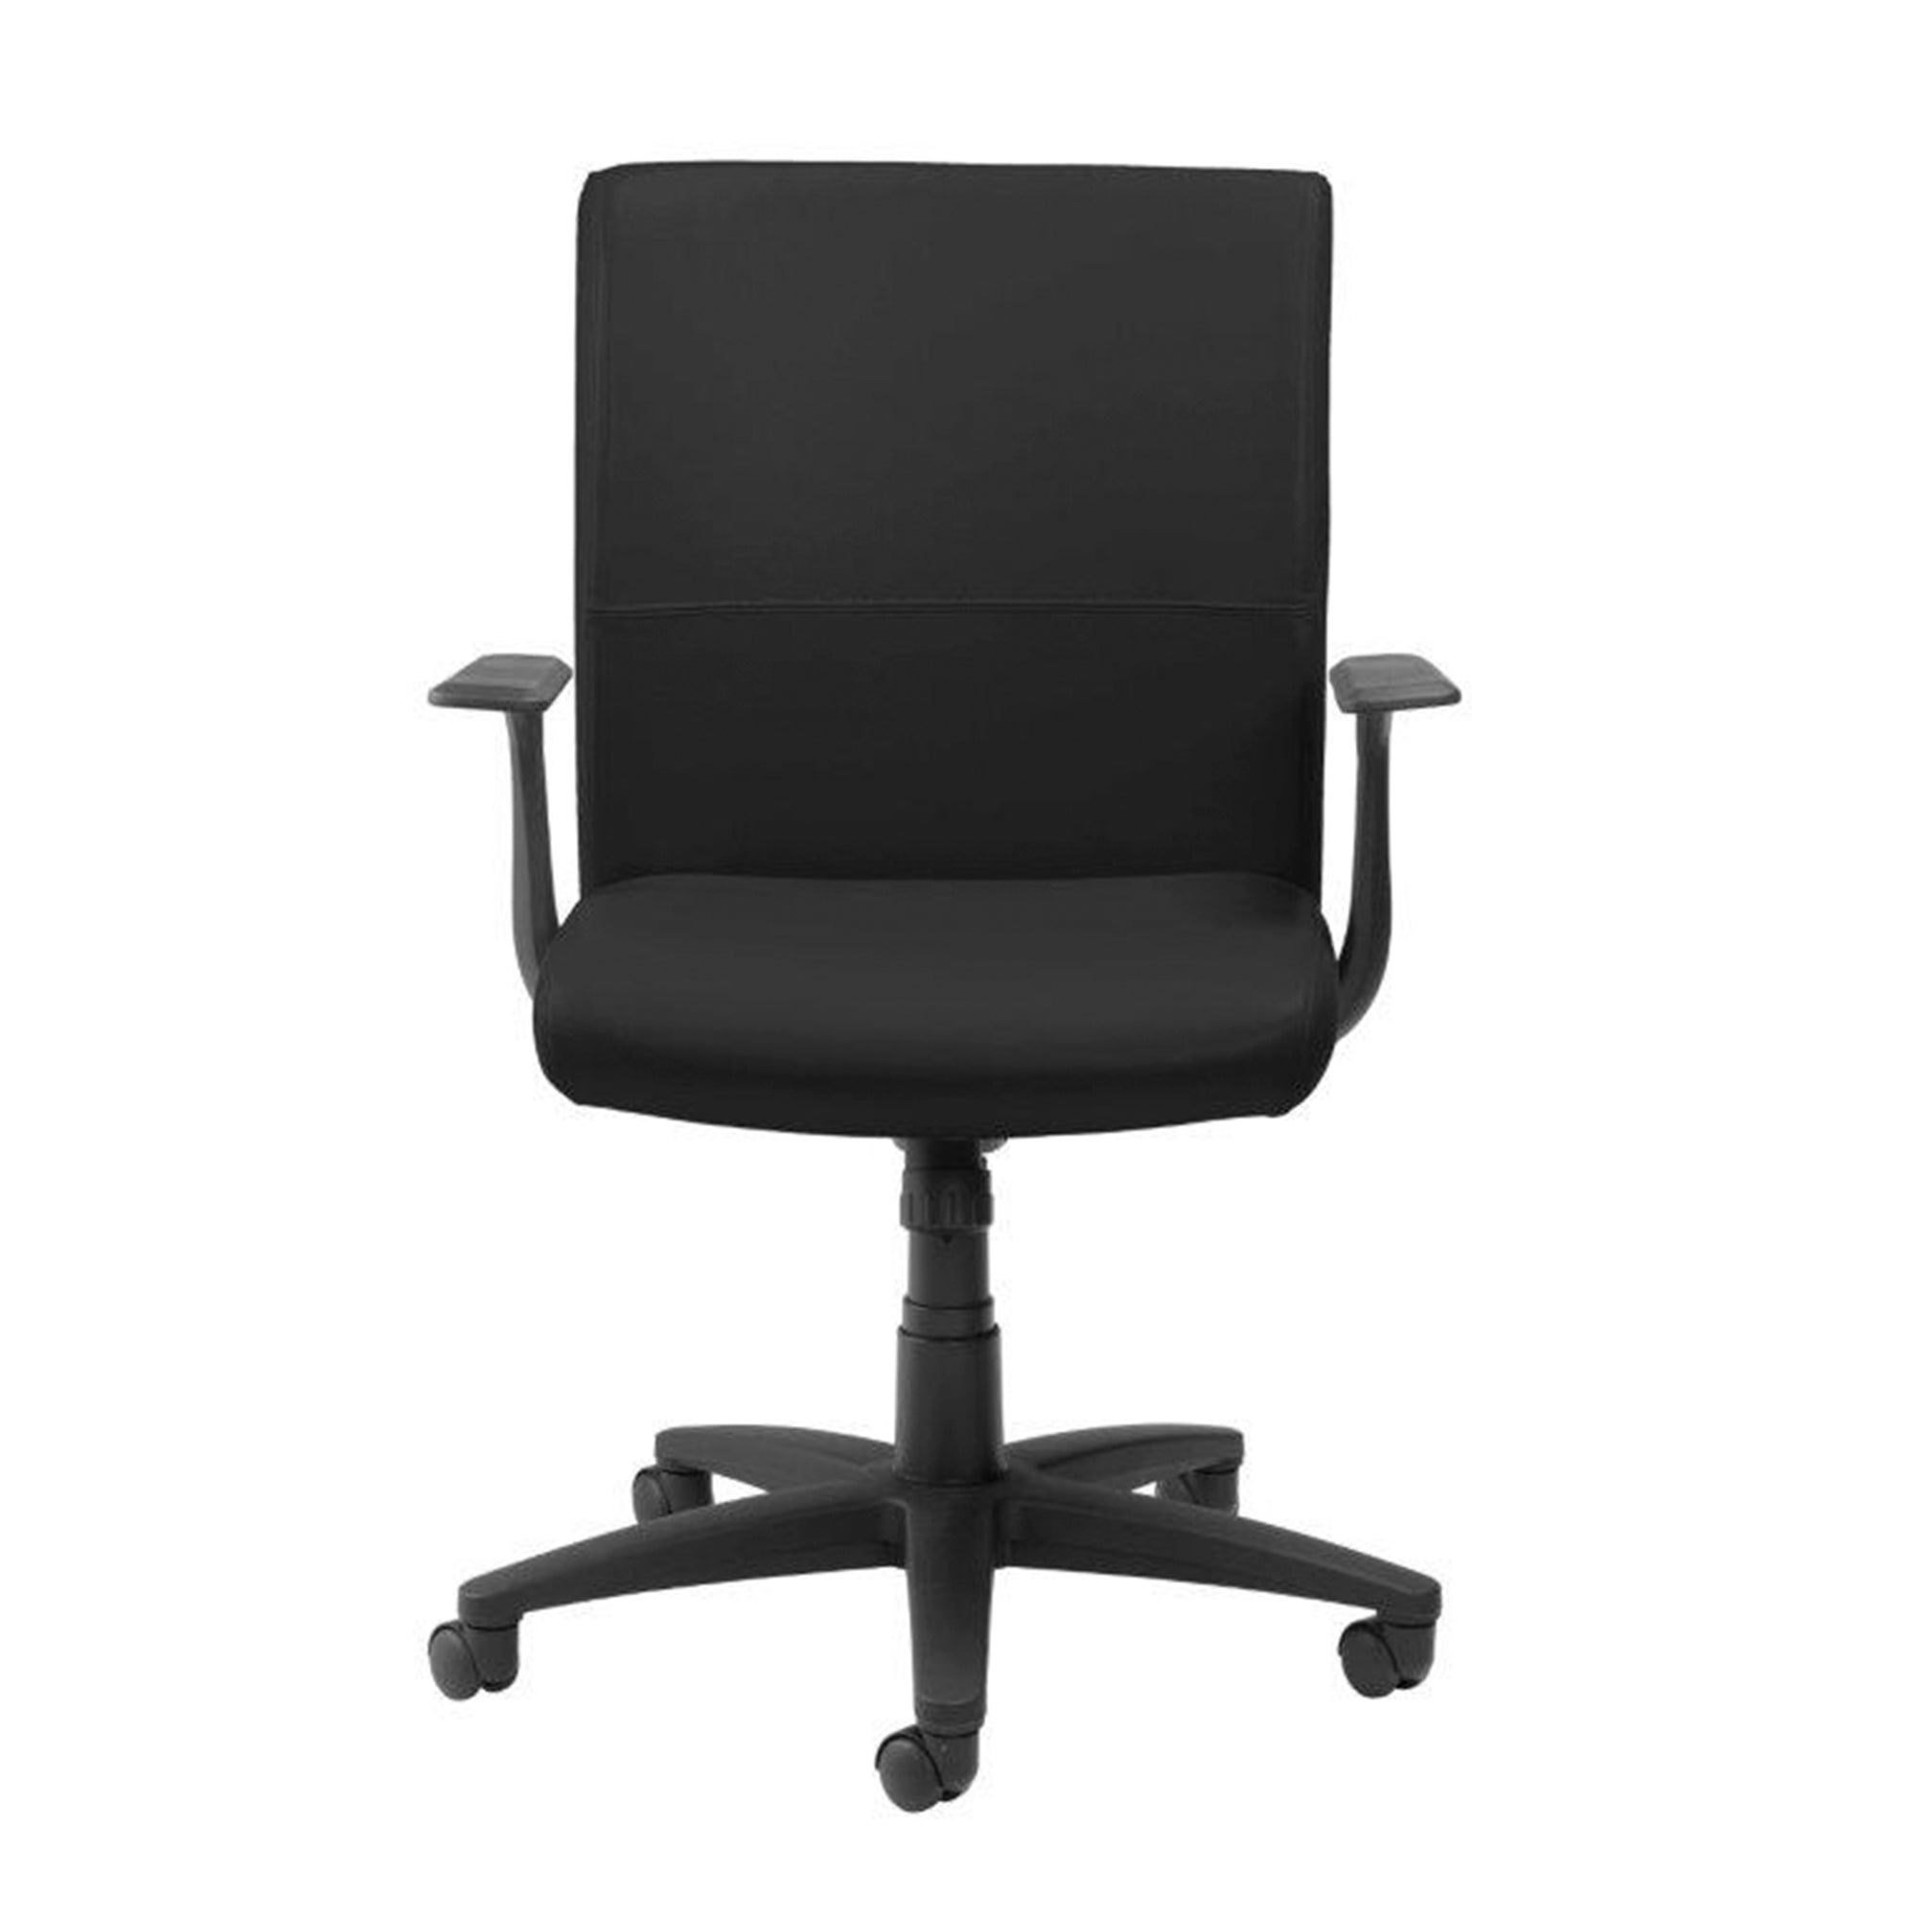 EC1 Meeting Chair